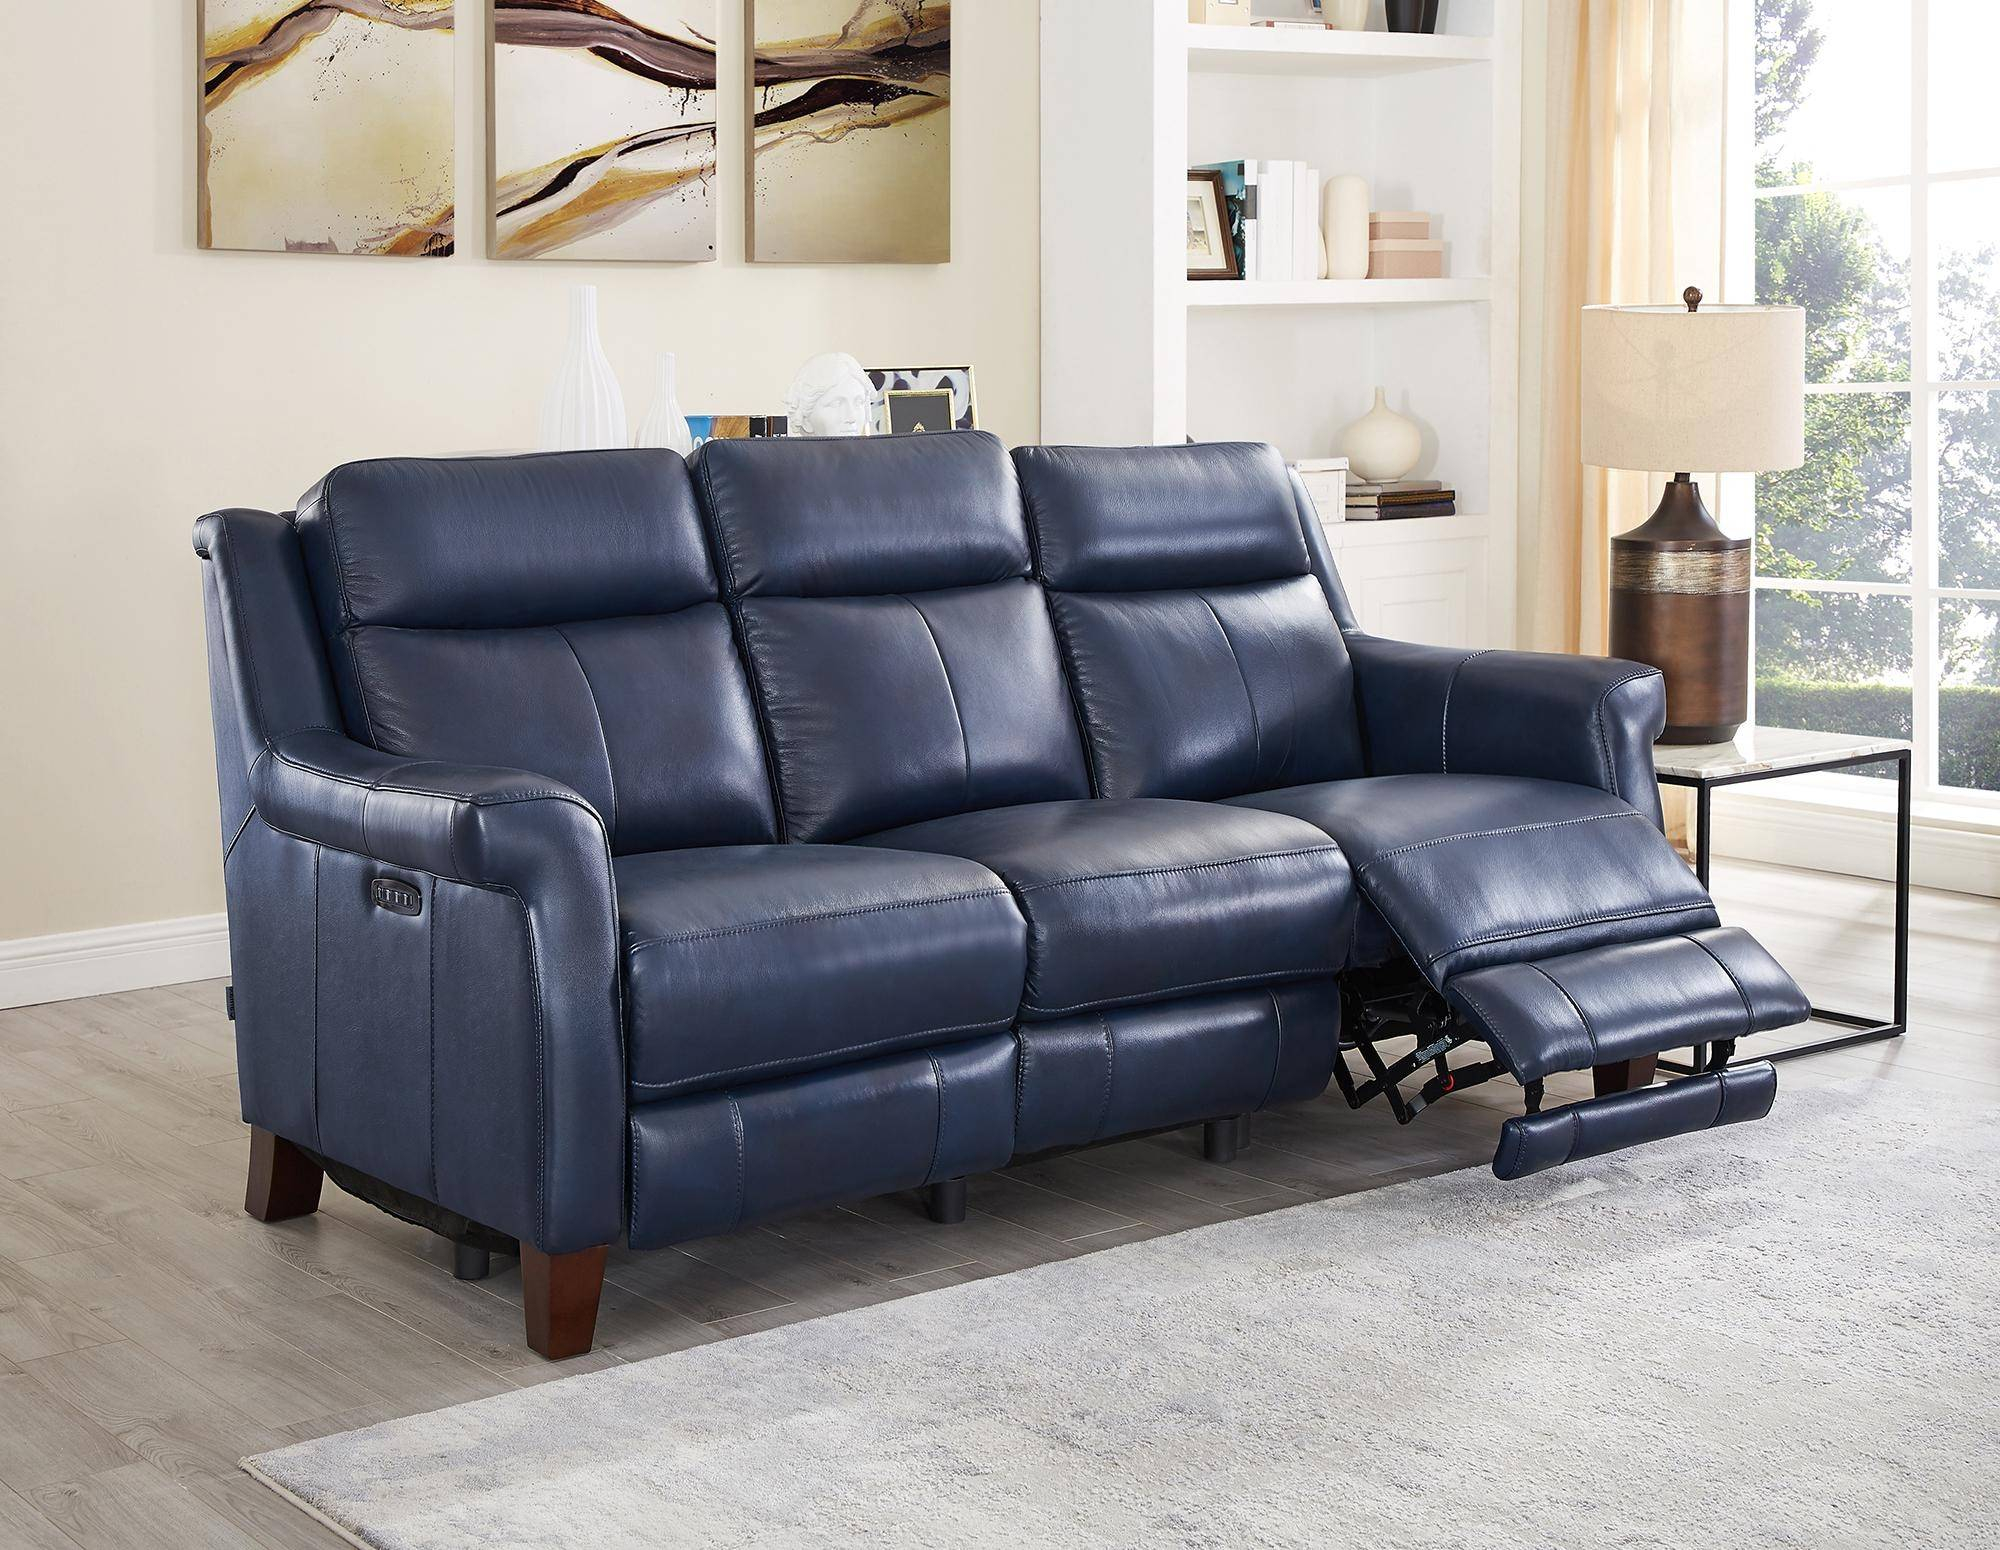 Chatham Blue Genuine Leather Power Reclining Sofa Loveseat Set 2 ...